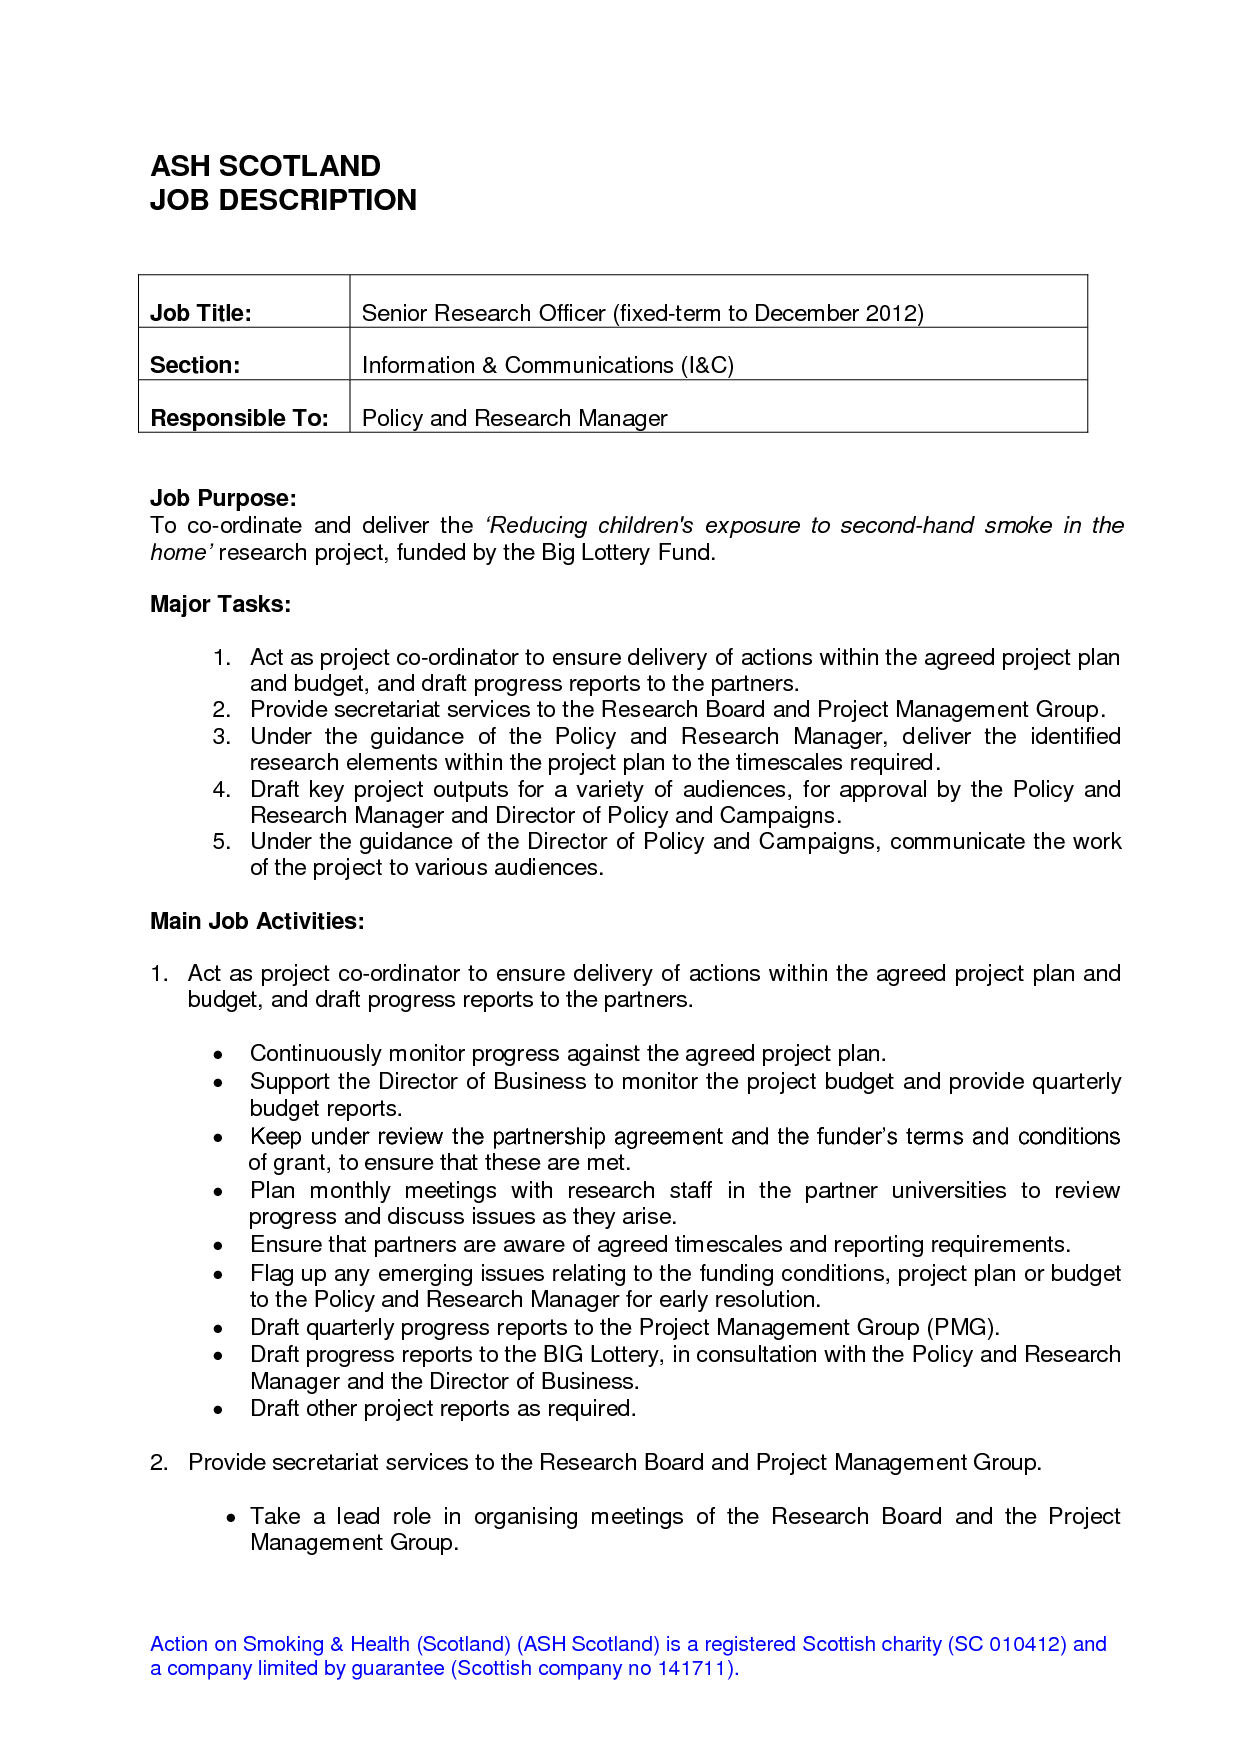 Veterinarian Resume Job Description  Job Description Forms  Pinterest  Job Description